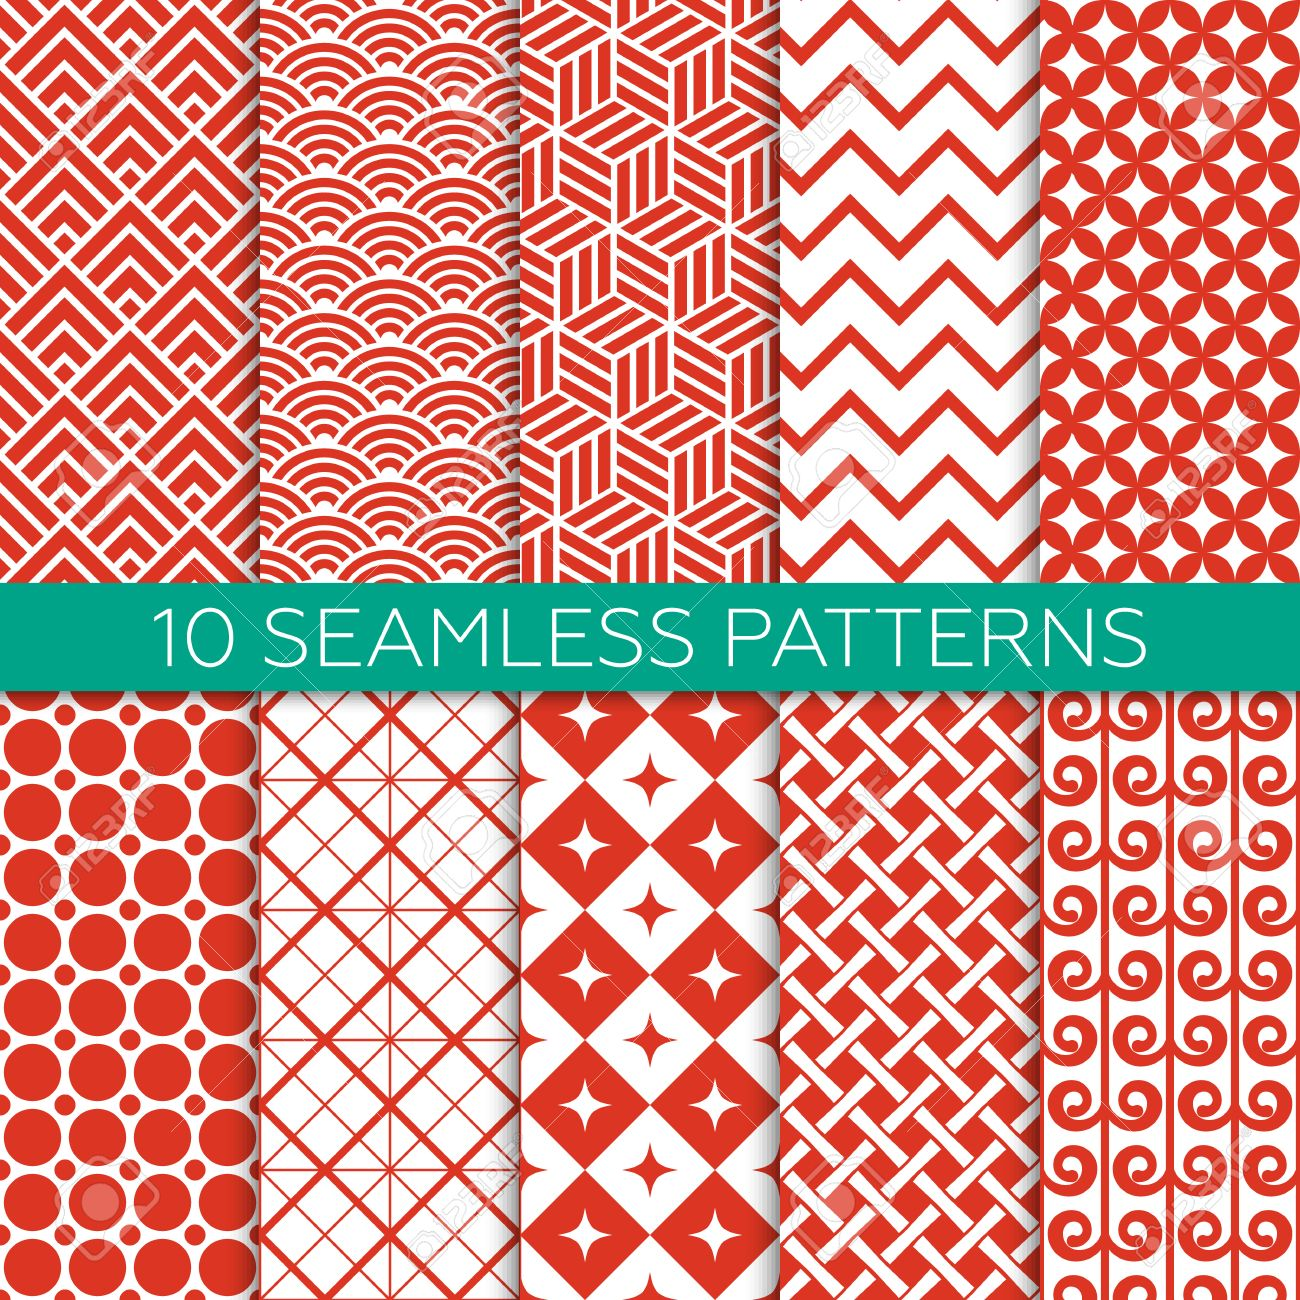 Set of red and white color geometric patterns. Monochrome design for fabric, wallpaper, web page background, scrap booking. Abstract ornament. Endless texture. Vector illustration. Swatches of seamless patterns included. - 48781627